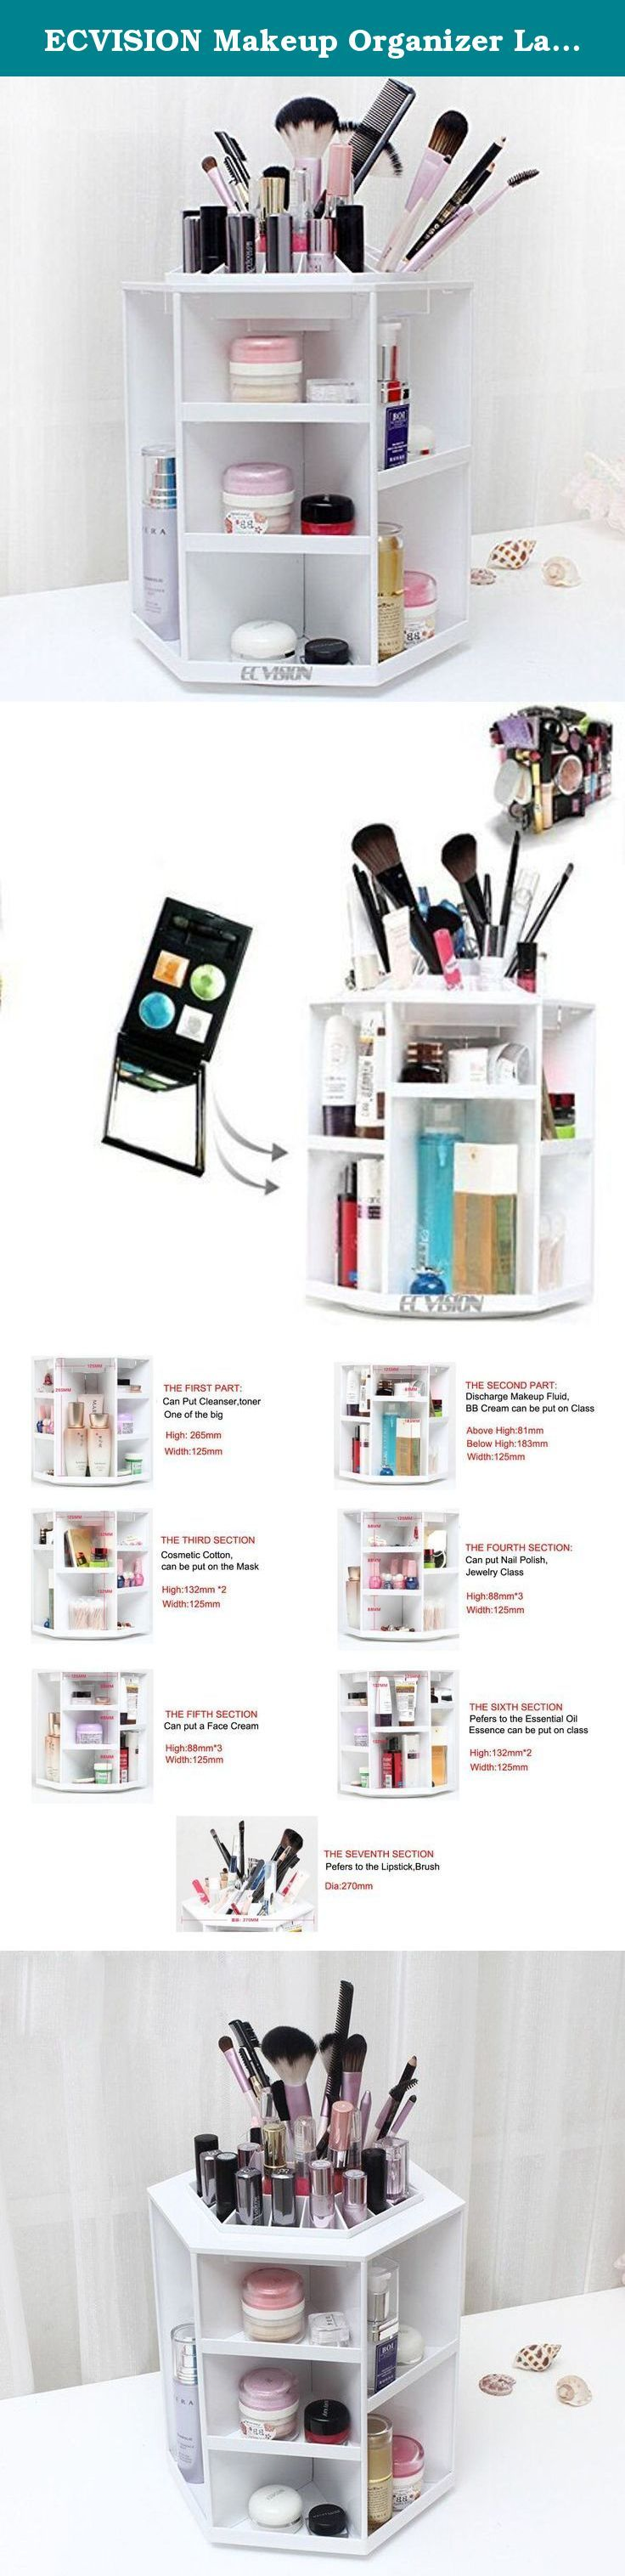 ECVISION Makeup Organizer Large Capacity 360°Rotating Acrylic Cosmetics Storage/Revolving Makeup Organizer/Cosmetics Storage Case (White). This is a extremely wonderful design for all women,it with the most beautiful comfortable and convenient design,it is easy to operate.The makeup organizer with 360°Rotating bottom, you can get whichever cosmetics you want, just rotating it. Can be removable and easy to carry.The design is novel and lighter, The Acrylic Cosmetics Storage can bear the…